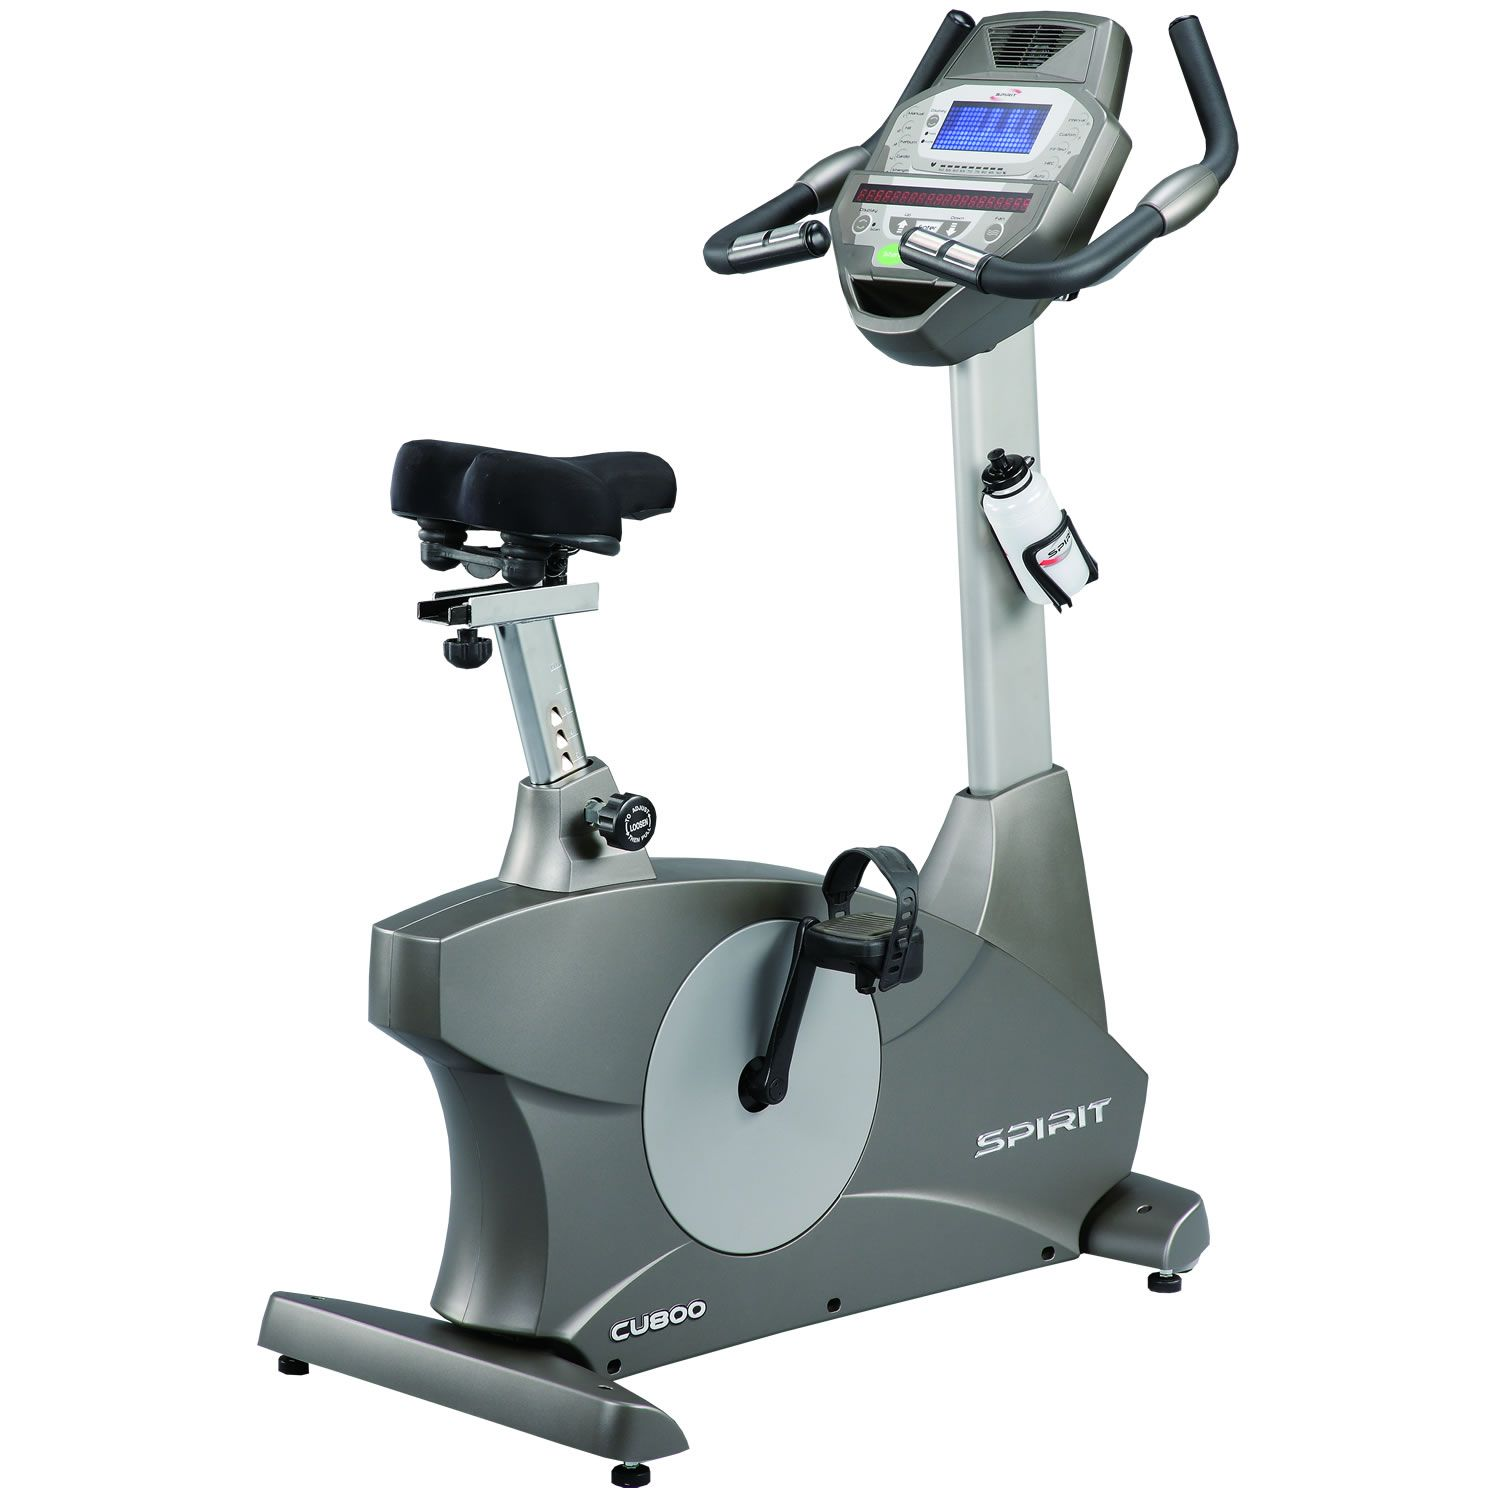 Afbeelding van Spirit CU800 hometrainer Upright Bike